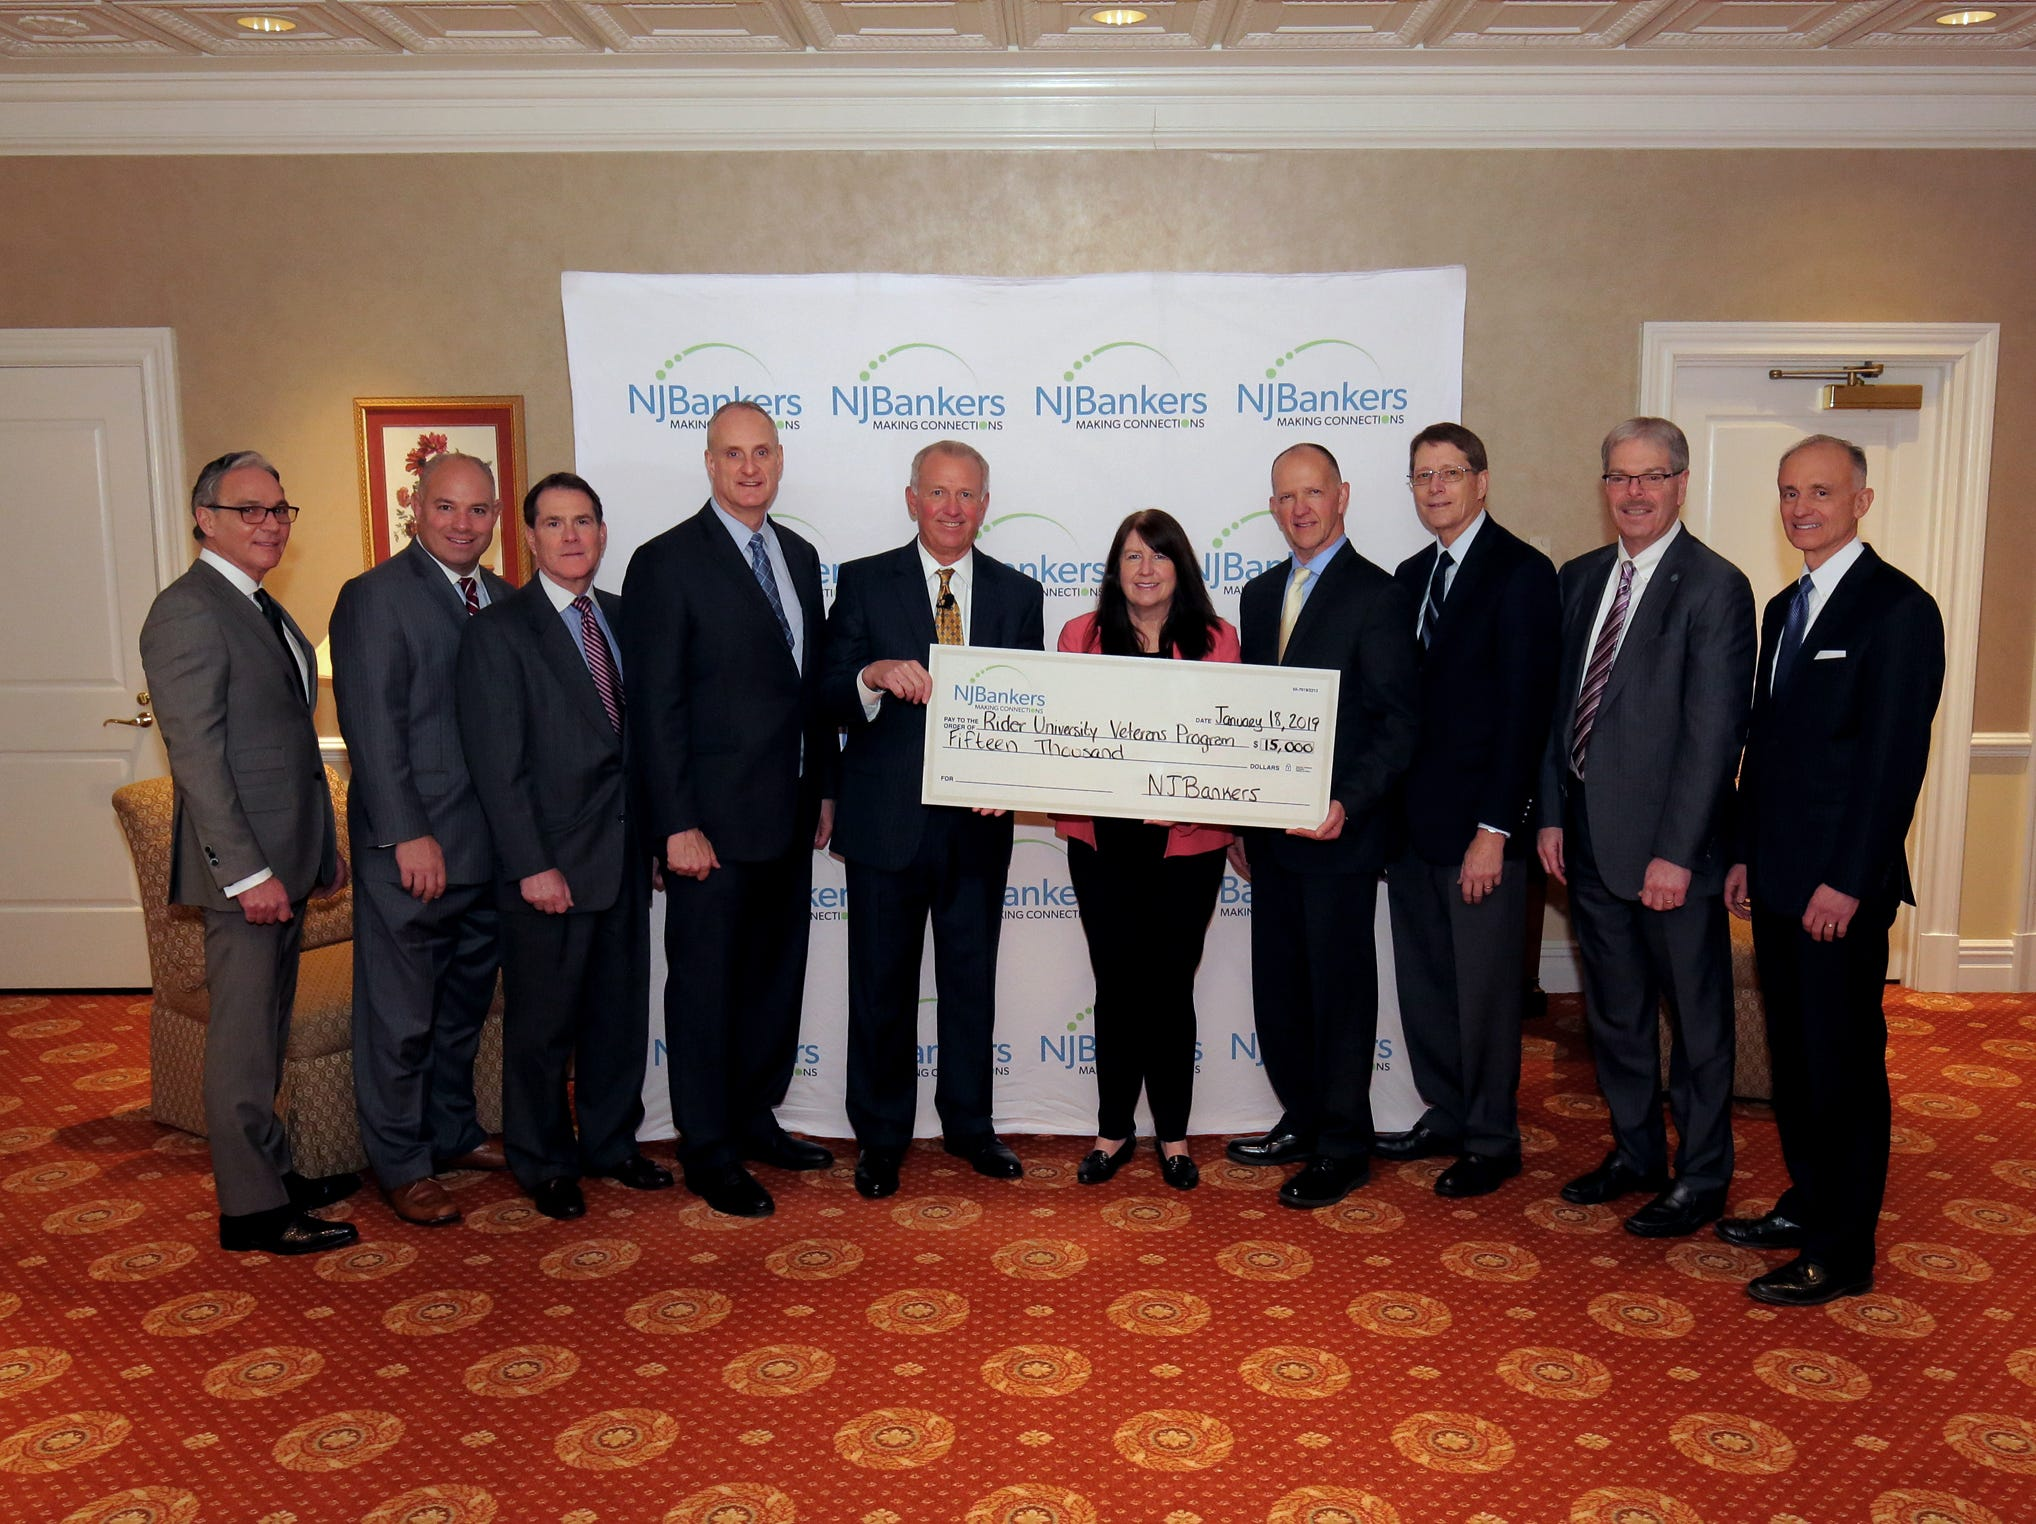 The Trustees of the NJBankers Charitable Foundation gather together to present $15,000 to representatives of the Rider University Veterans and Military Affairs Office. Through the program, the University supports the educational needs of Veterans. (Left to right): James Vaccaro, chairman/president/CEO, Manasquan Bank; Michael Affuso, NJBankers EVP/director of Government Relations; Louis Anthony Costantino, Jr., managing director/industry manager, JPMorgan Chase Bank; Thomas Kemly, president/CEO, Columbia Bank; John McWeeney, Jr., NJBankers president/CEO; Lisa Teach, Entrepreneurship Center director and Ron Cook, associate dean for Graduate Programs, CBA, professor of Entrepreneurship, both of Rider University; James Silkensen, director, Somerset Savings Bank; Thomas Shara, president/CEO, Lakeland Bank; and Richard Siderko, president/CEO, Bankers Cooperative Group.